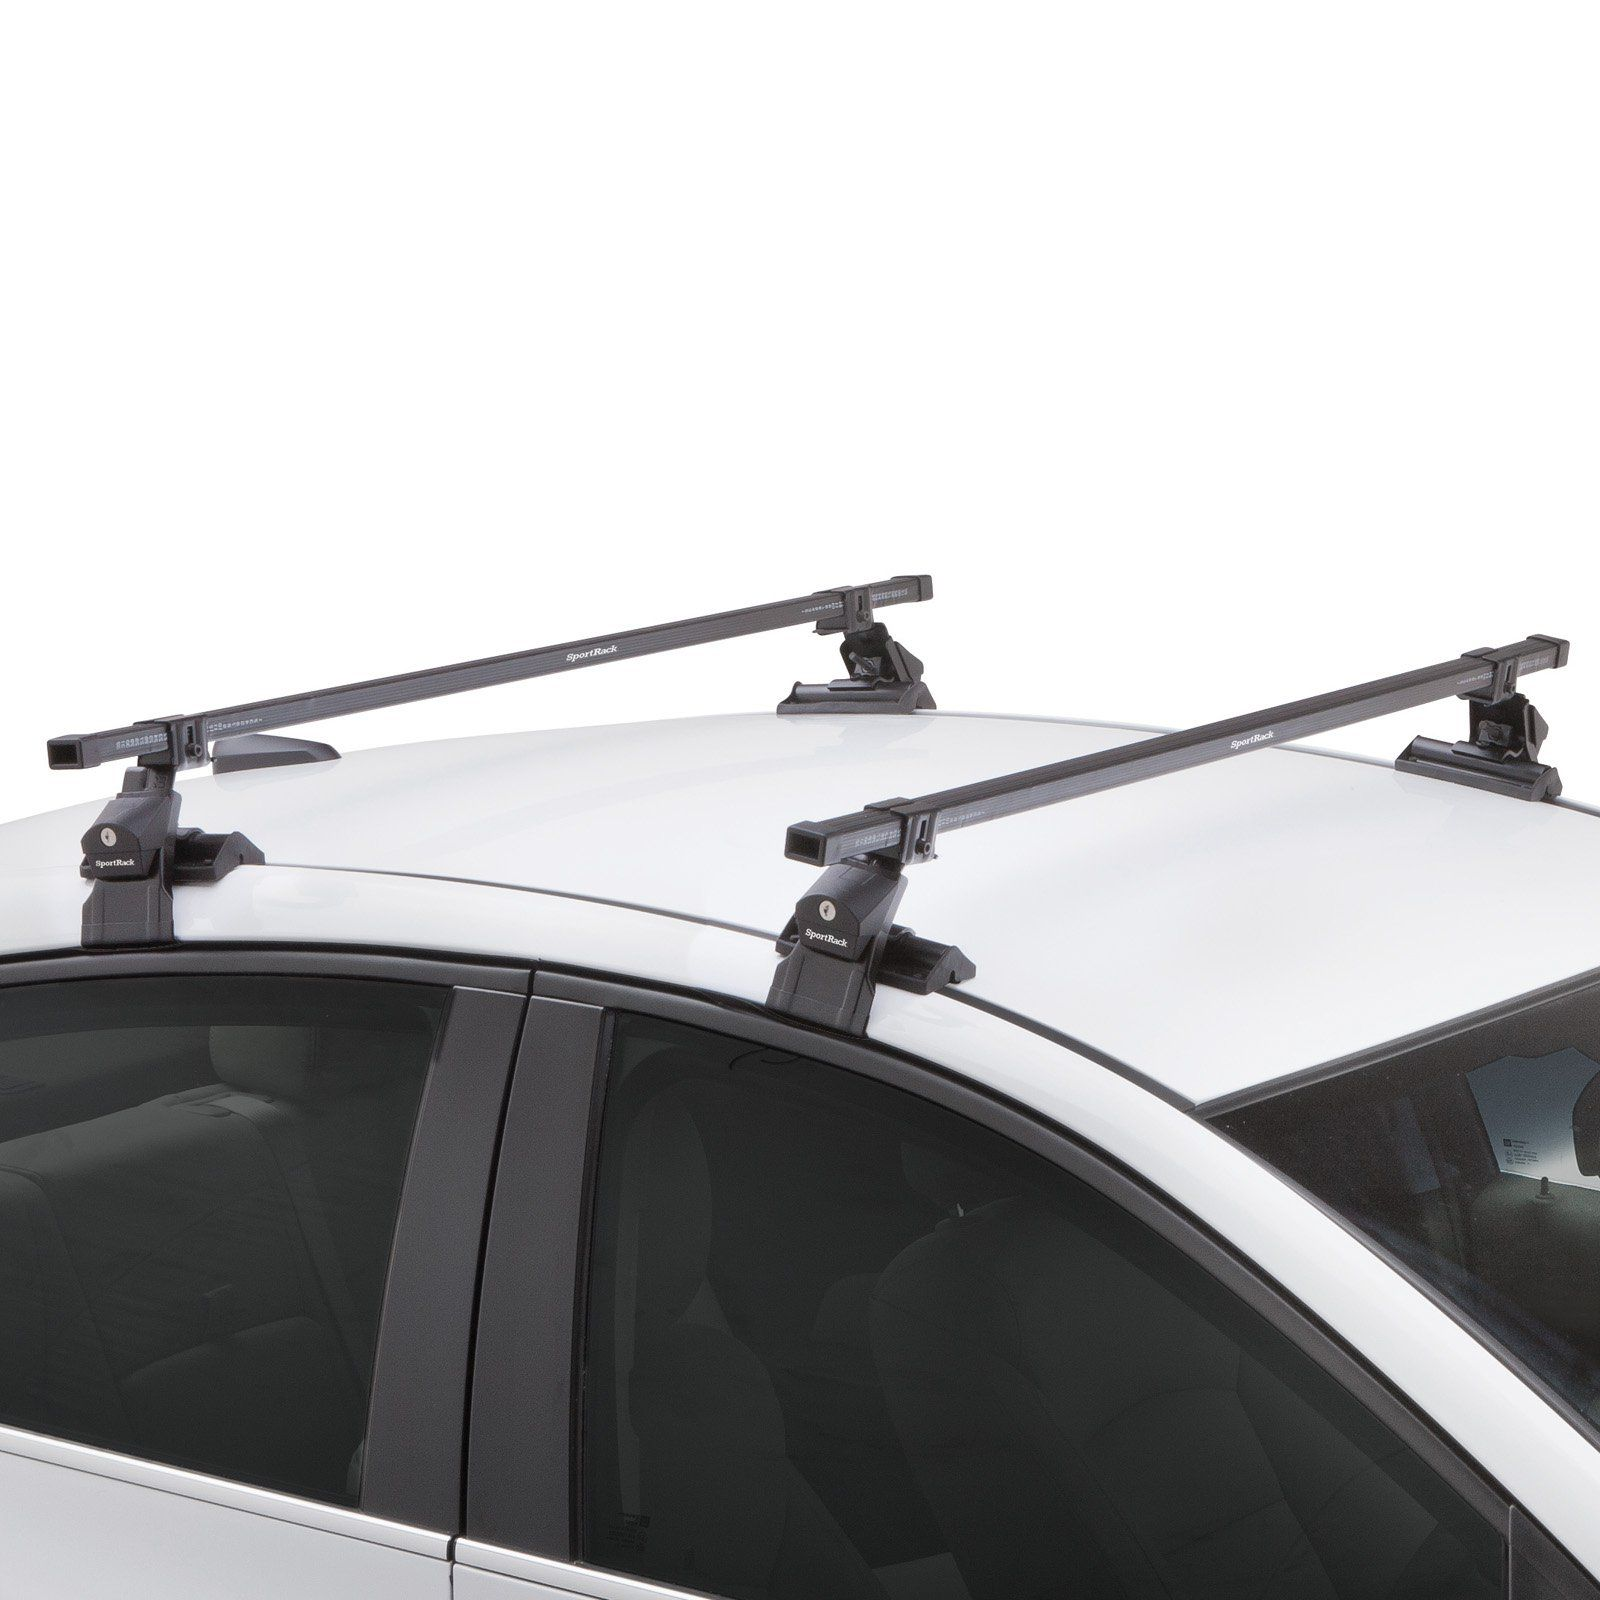 Cheap And Easy Way To Build The Best Kayak Storage Rack With Images Car Racks Roof Rack Cargo Roof Rack